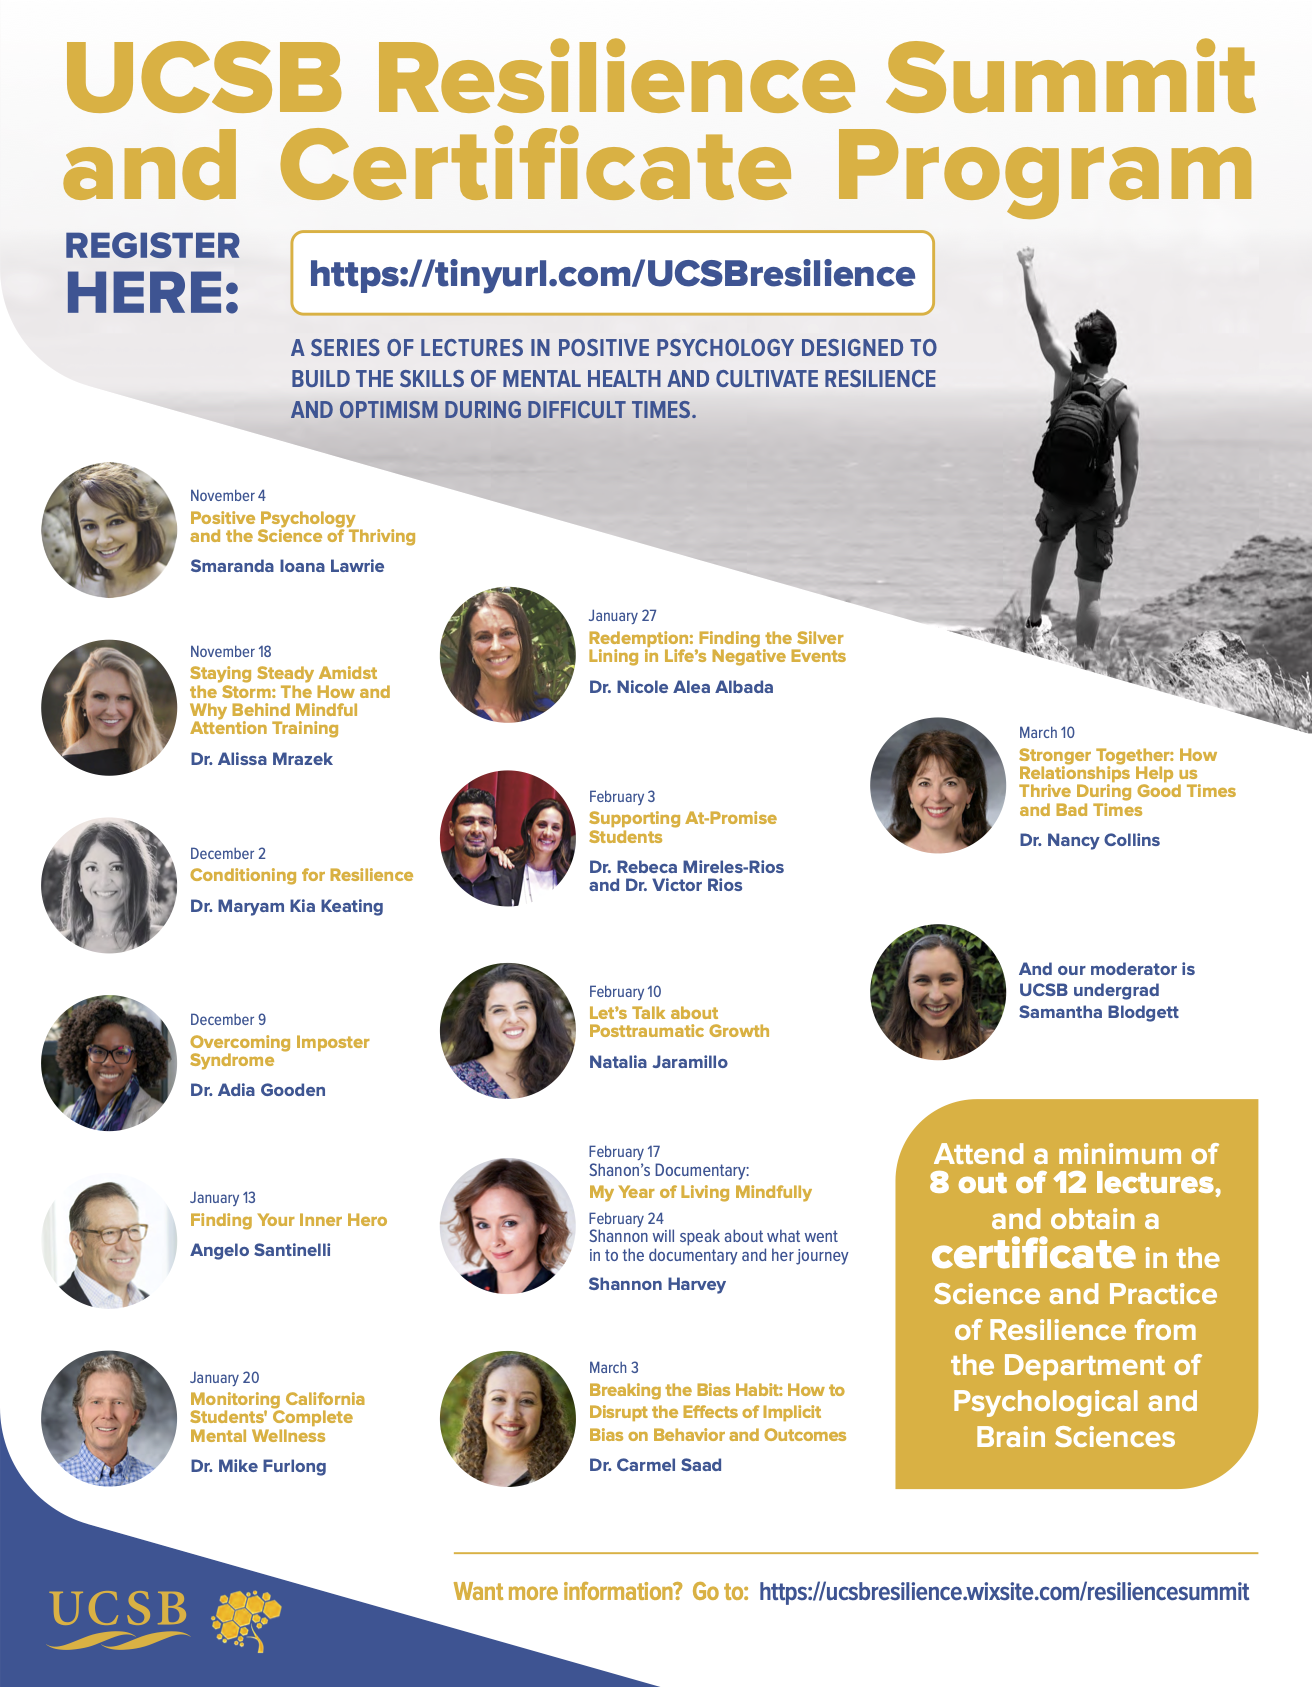 UCSB Resilience Summit and Certificate Program